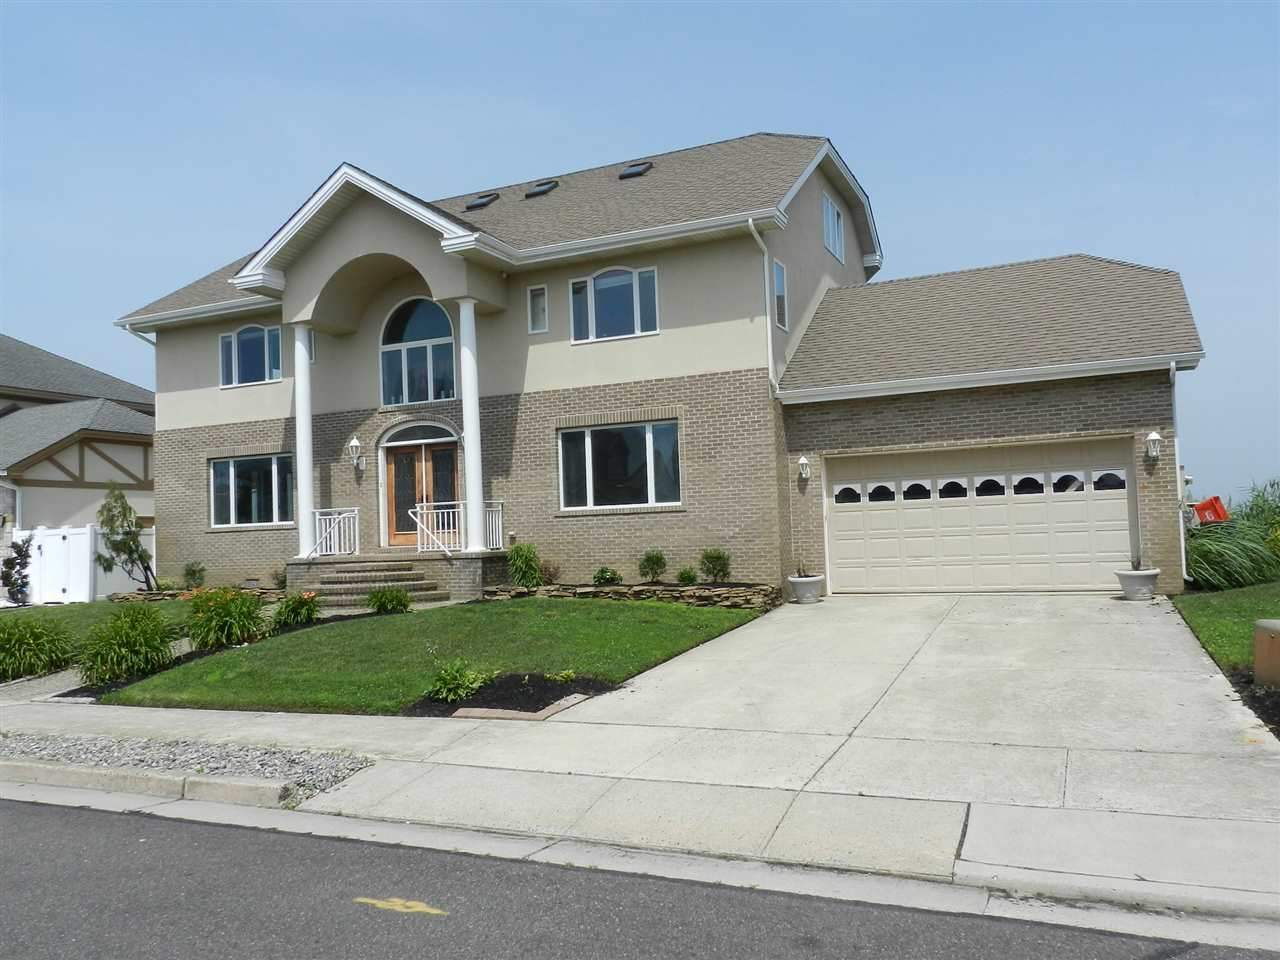 9100 Bayview, Lower Township